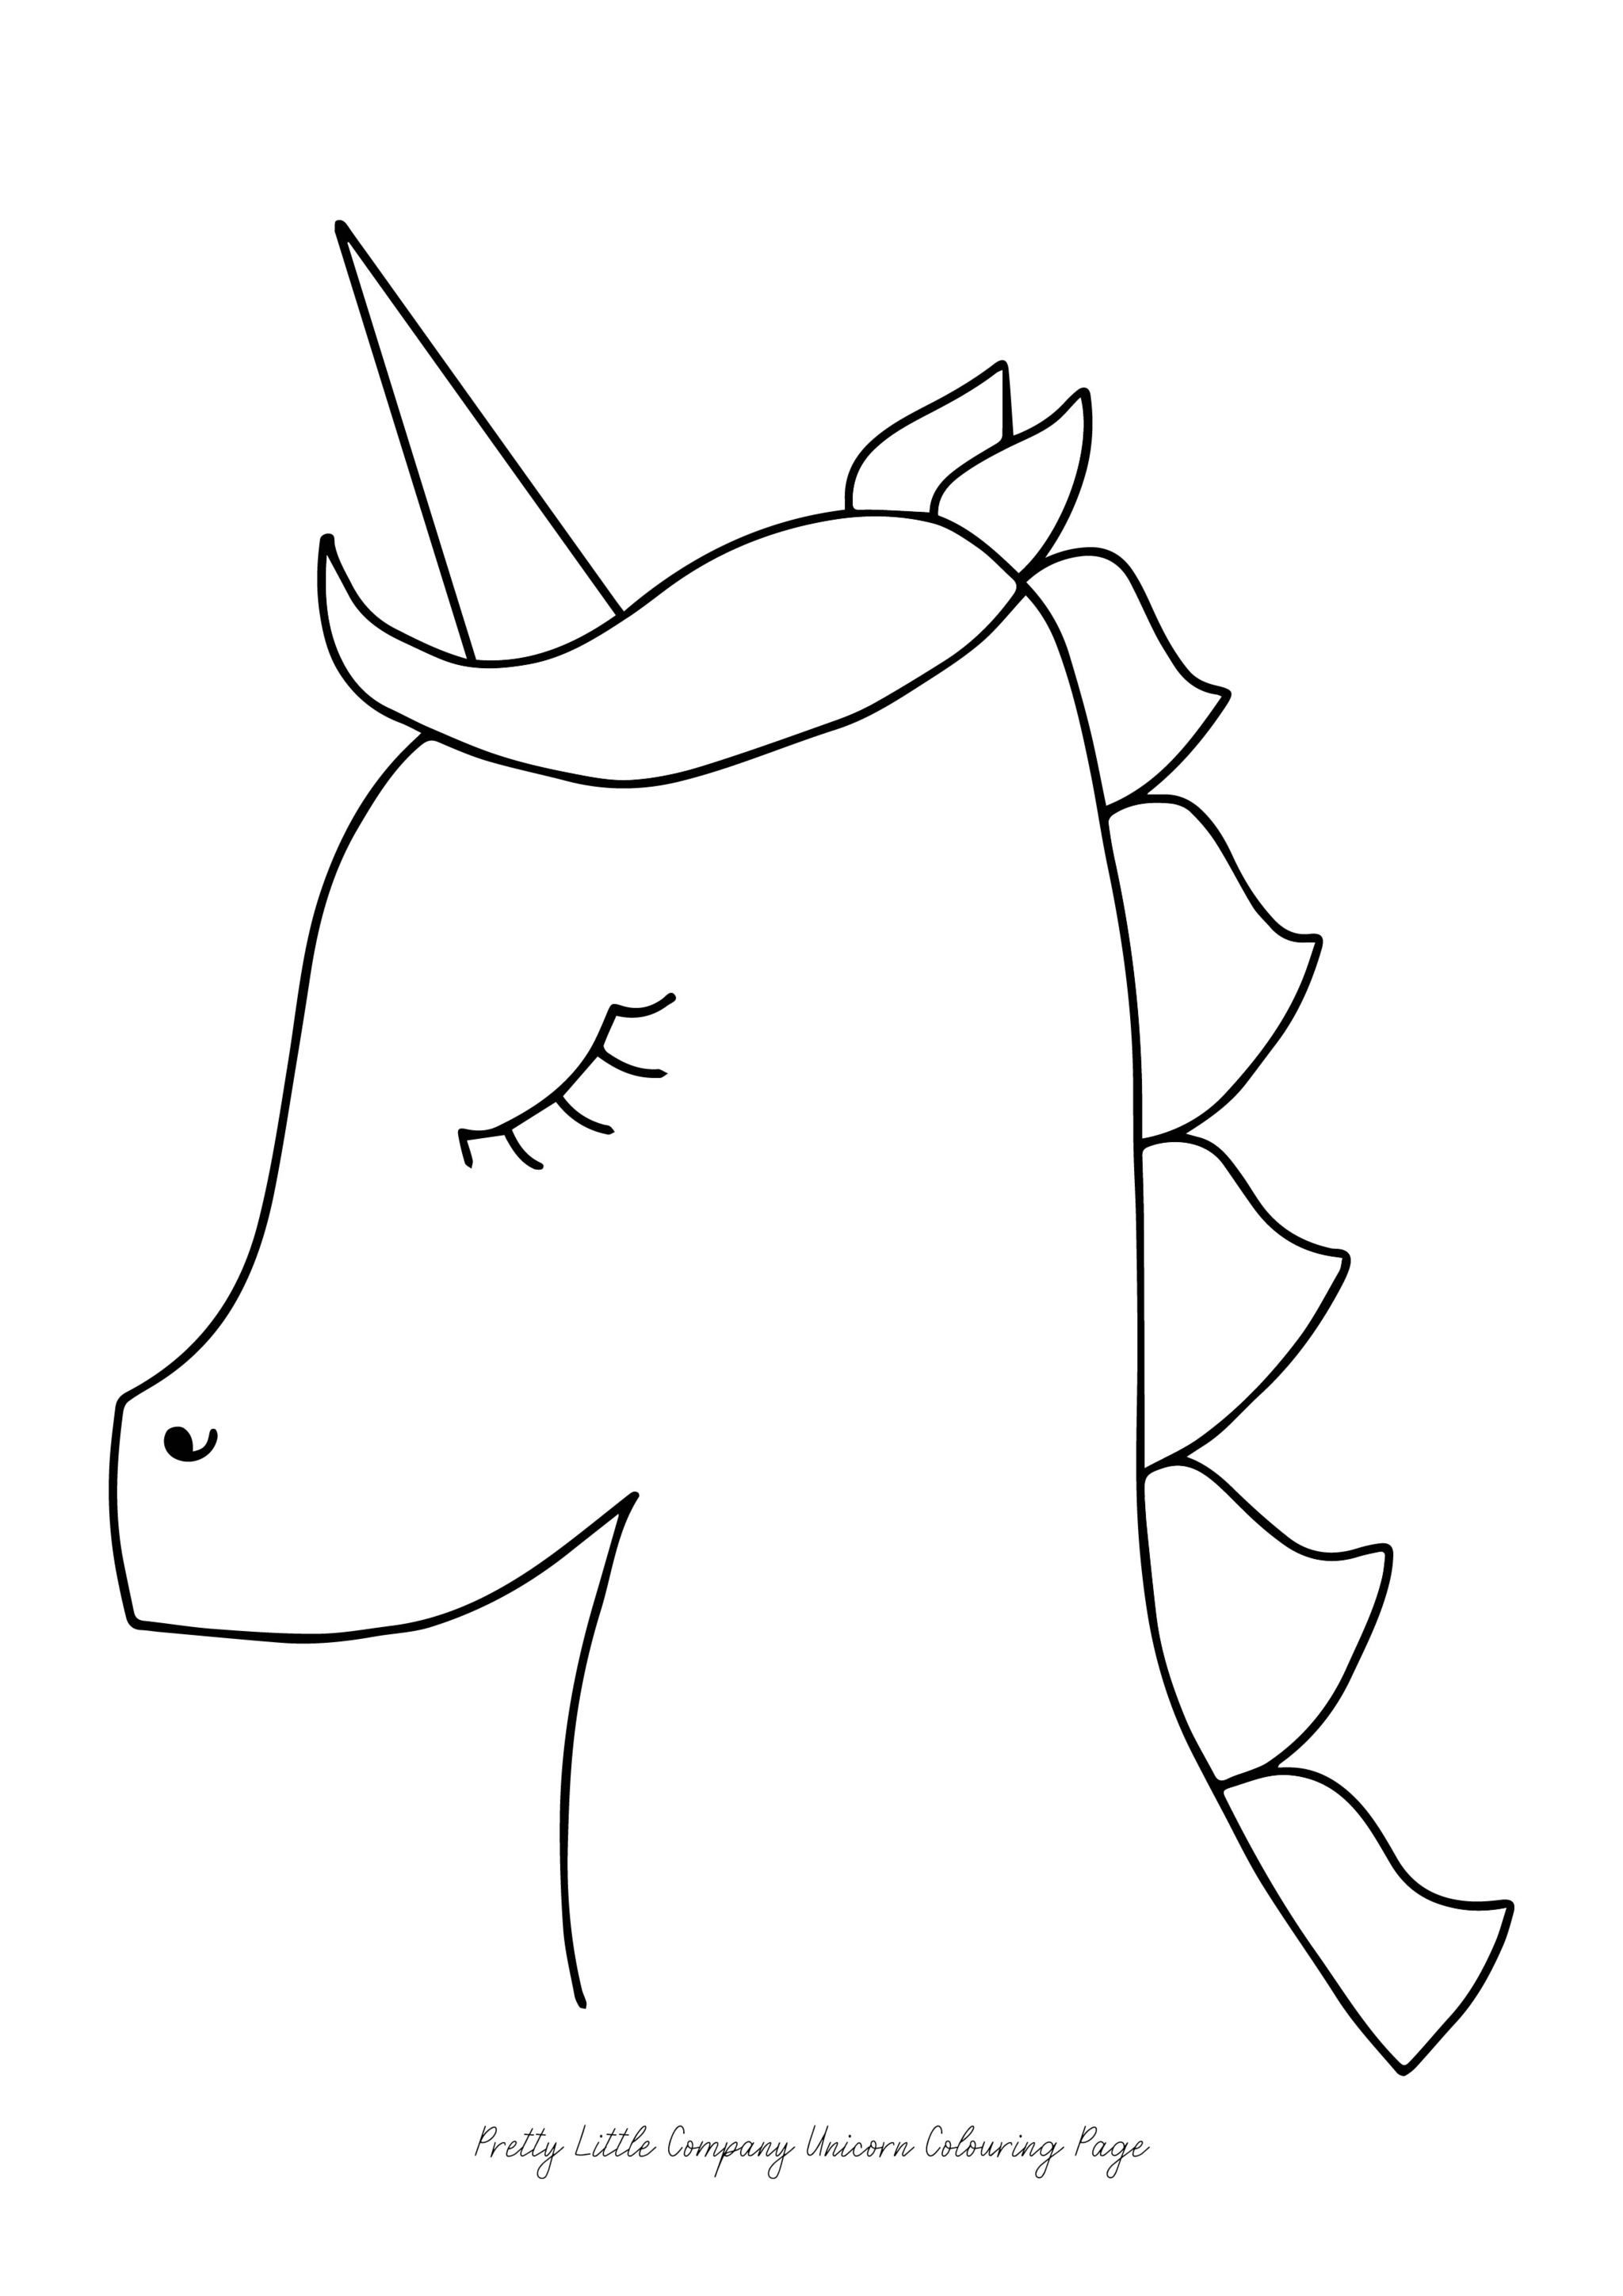 Free Stuff Unicorn Coloring Pages Bunny Coloring Pages Dinosaur Coloring Pages